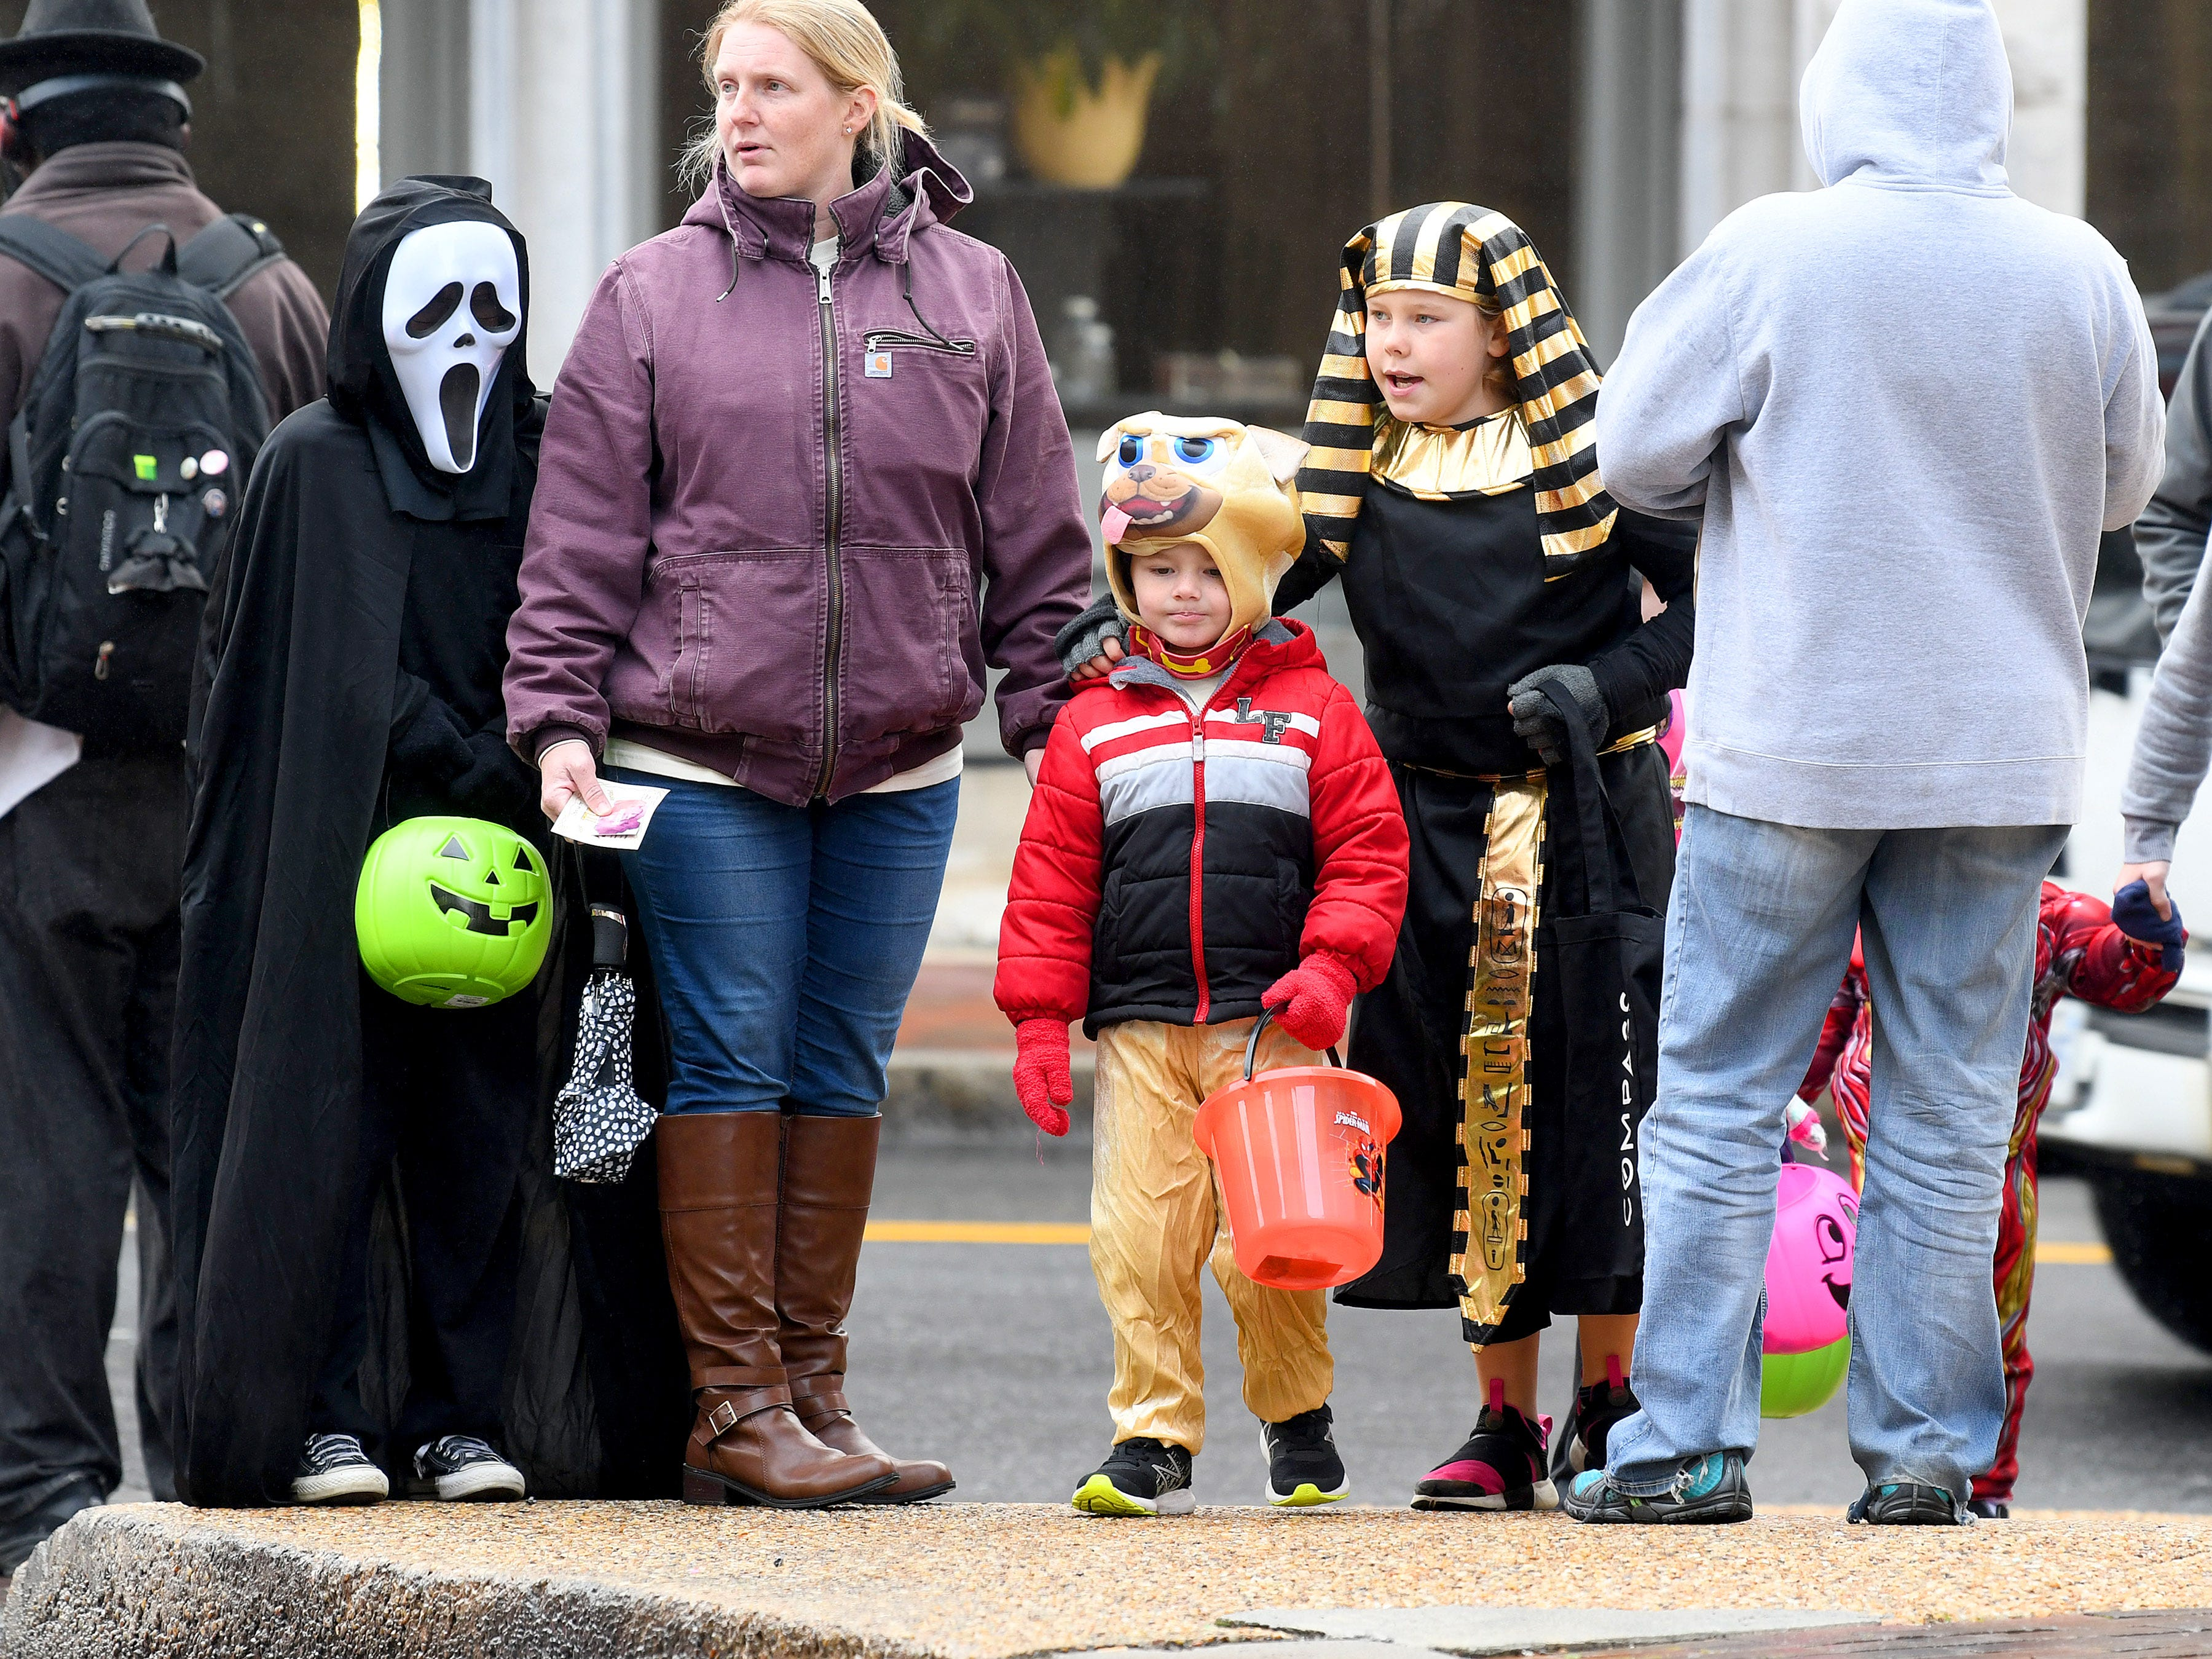 Ghostface, a canine and a pharaoh trick-or treat together during the annual downtown trick-or-treating event in Staunton on Saturday, Oct. 27, 2018.